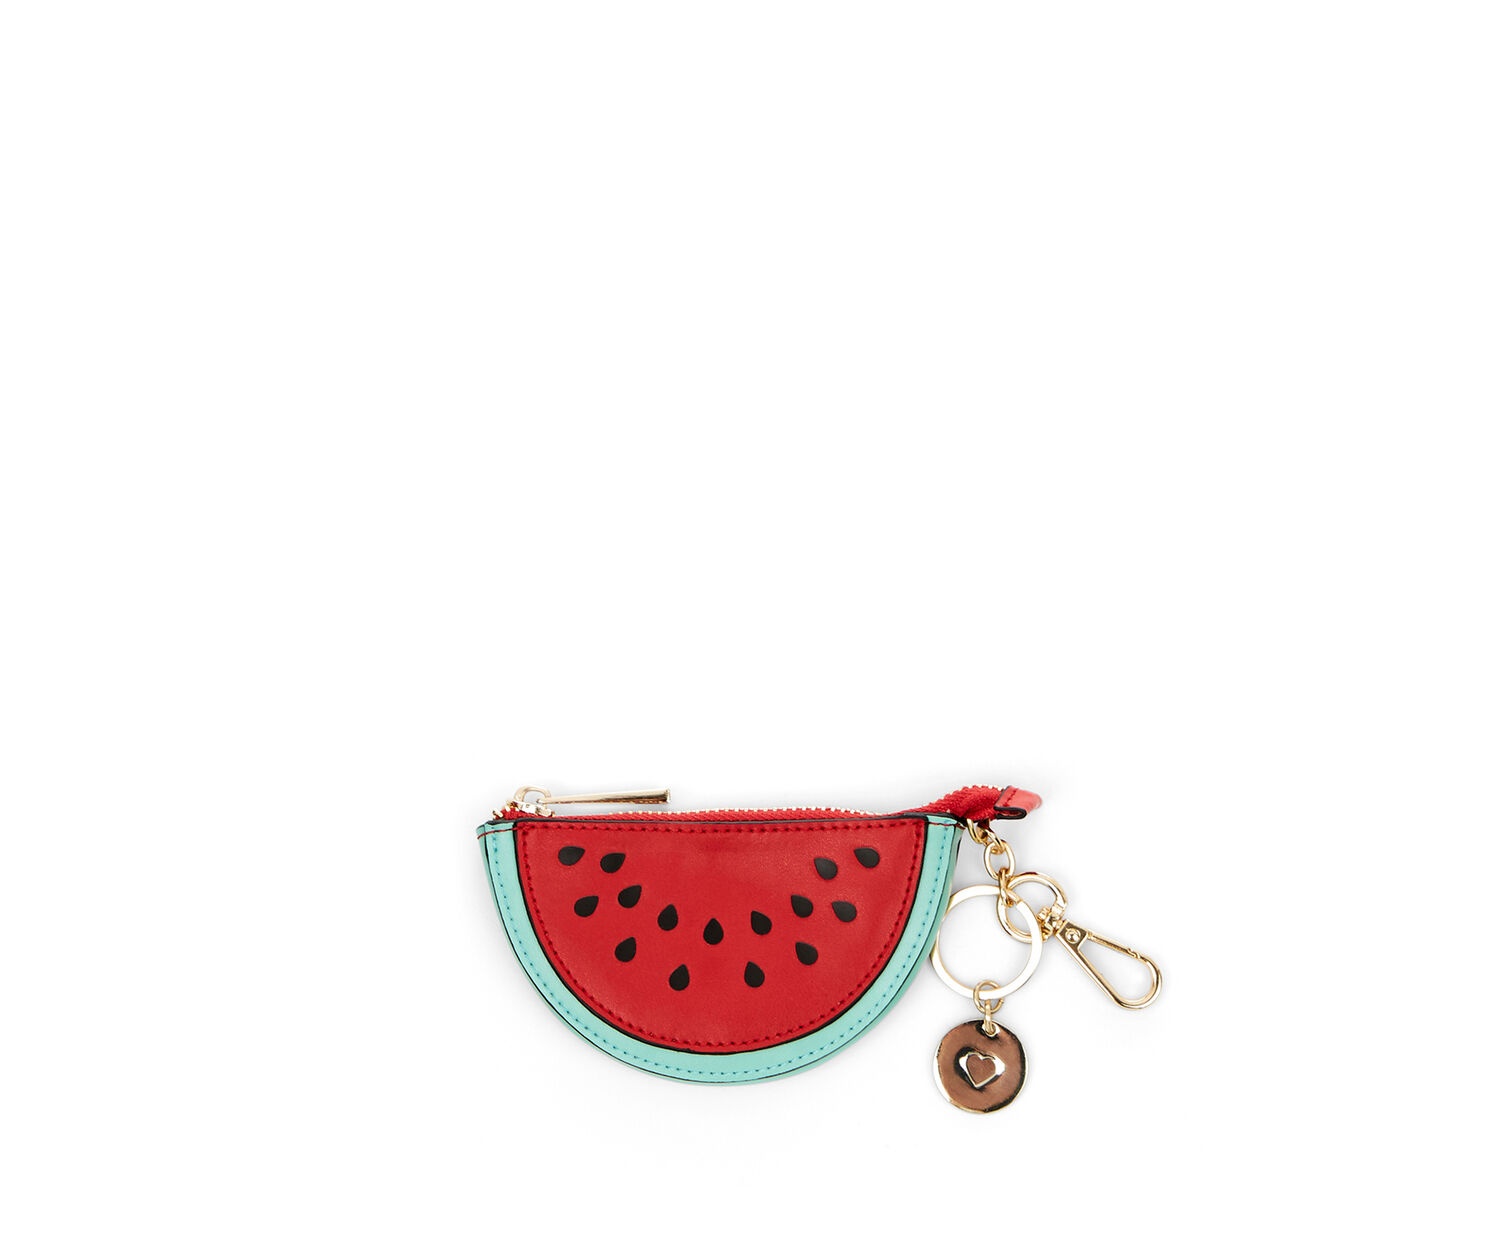 Oasis, LEATHER COIN PURSE WATERMELON Multi Red 1